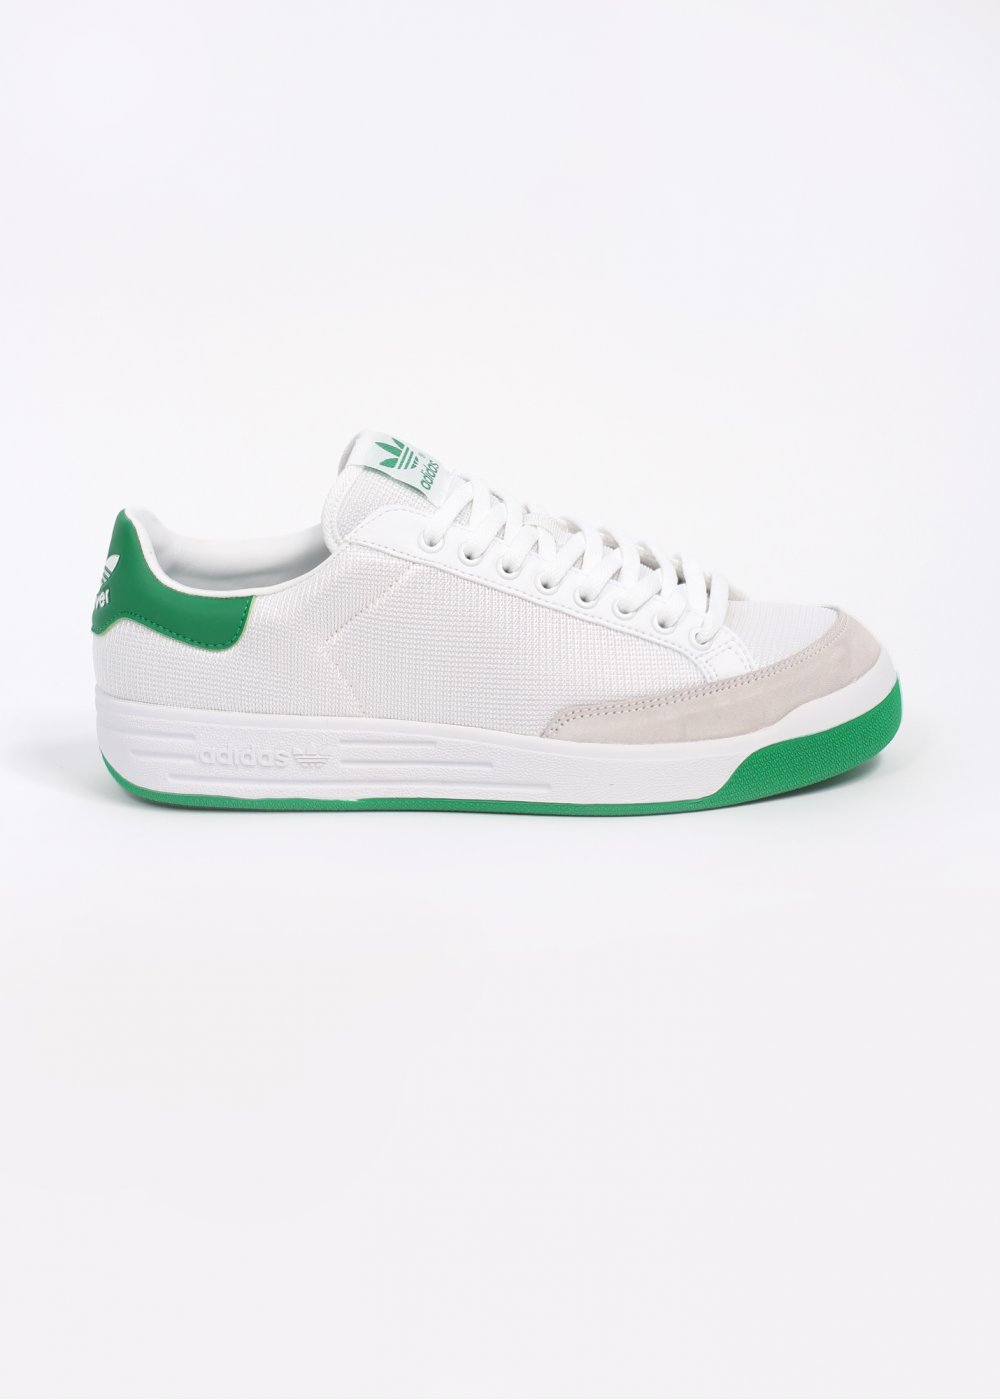 half price first look detailing adidas Originals Footwear Rod Laver Trainers - White / Green